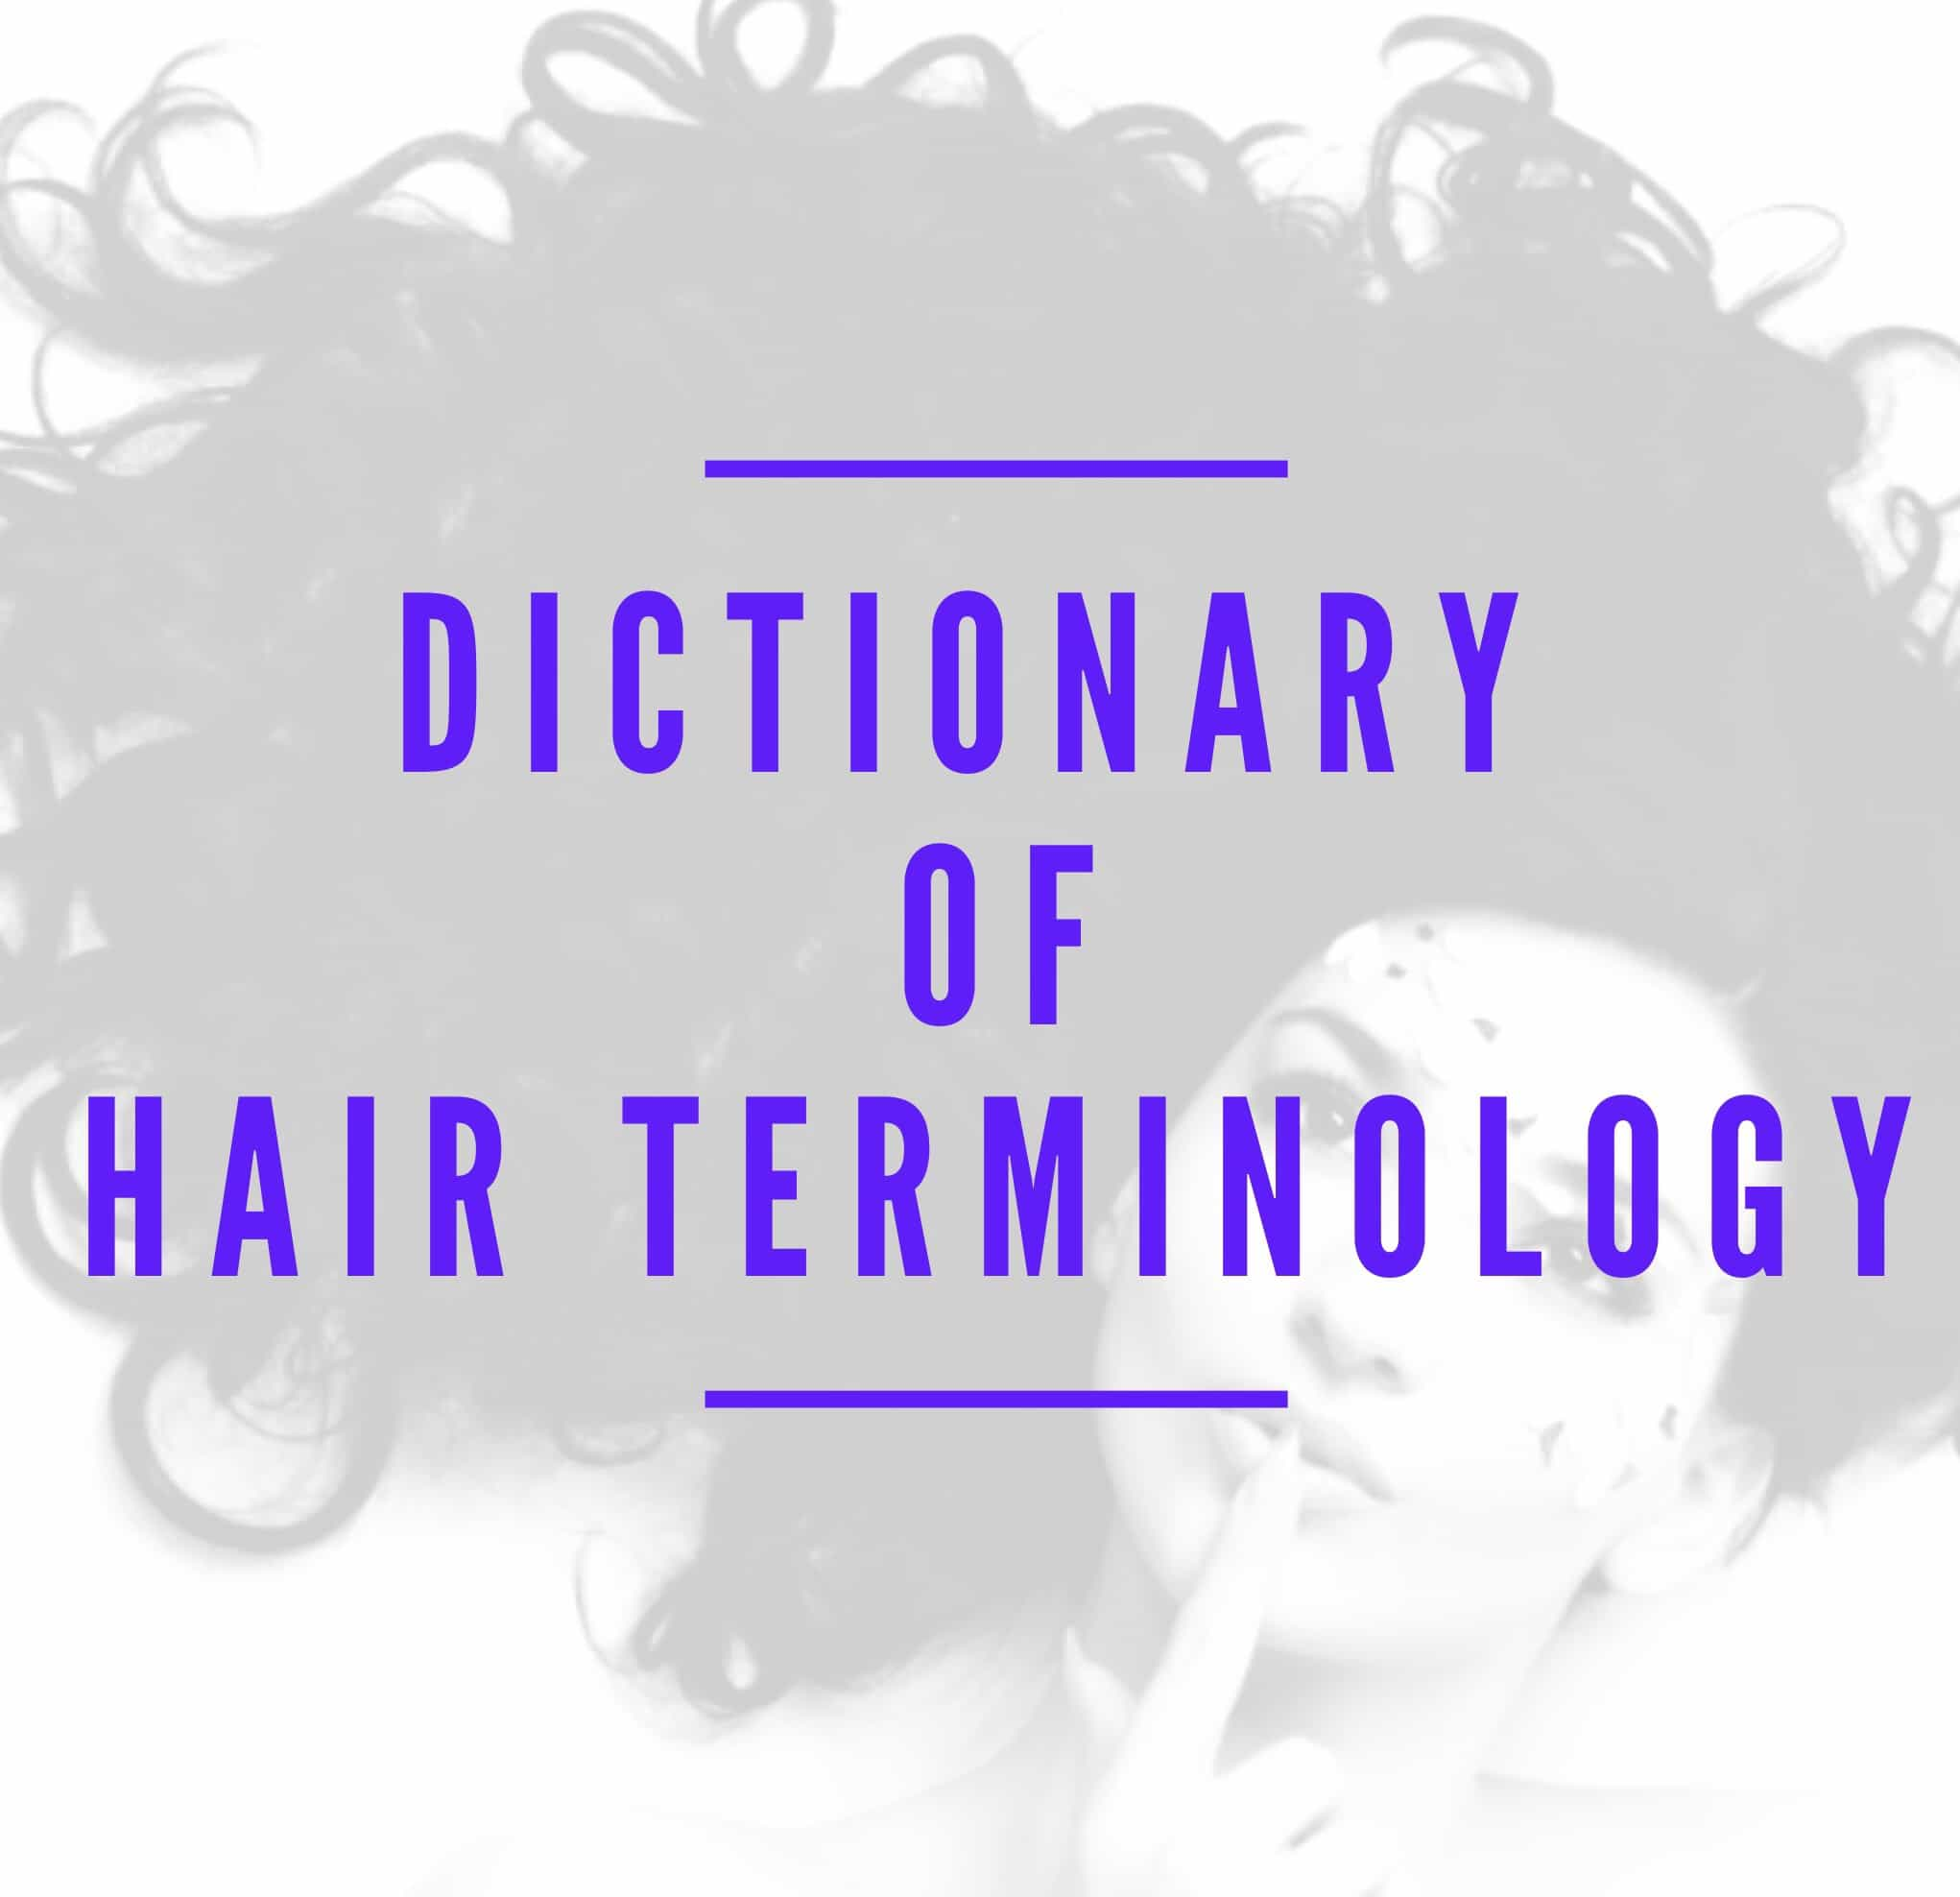 Do you ever wonder what all the hairstylist lingo is? Check out this dictionary of hair terminology!